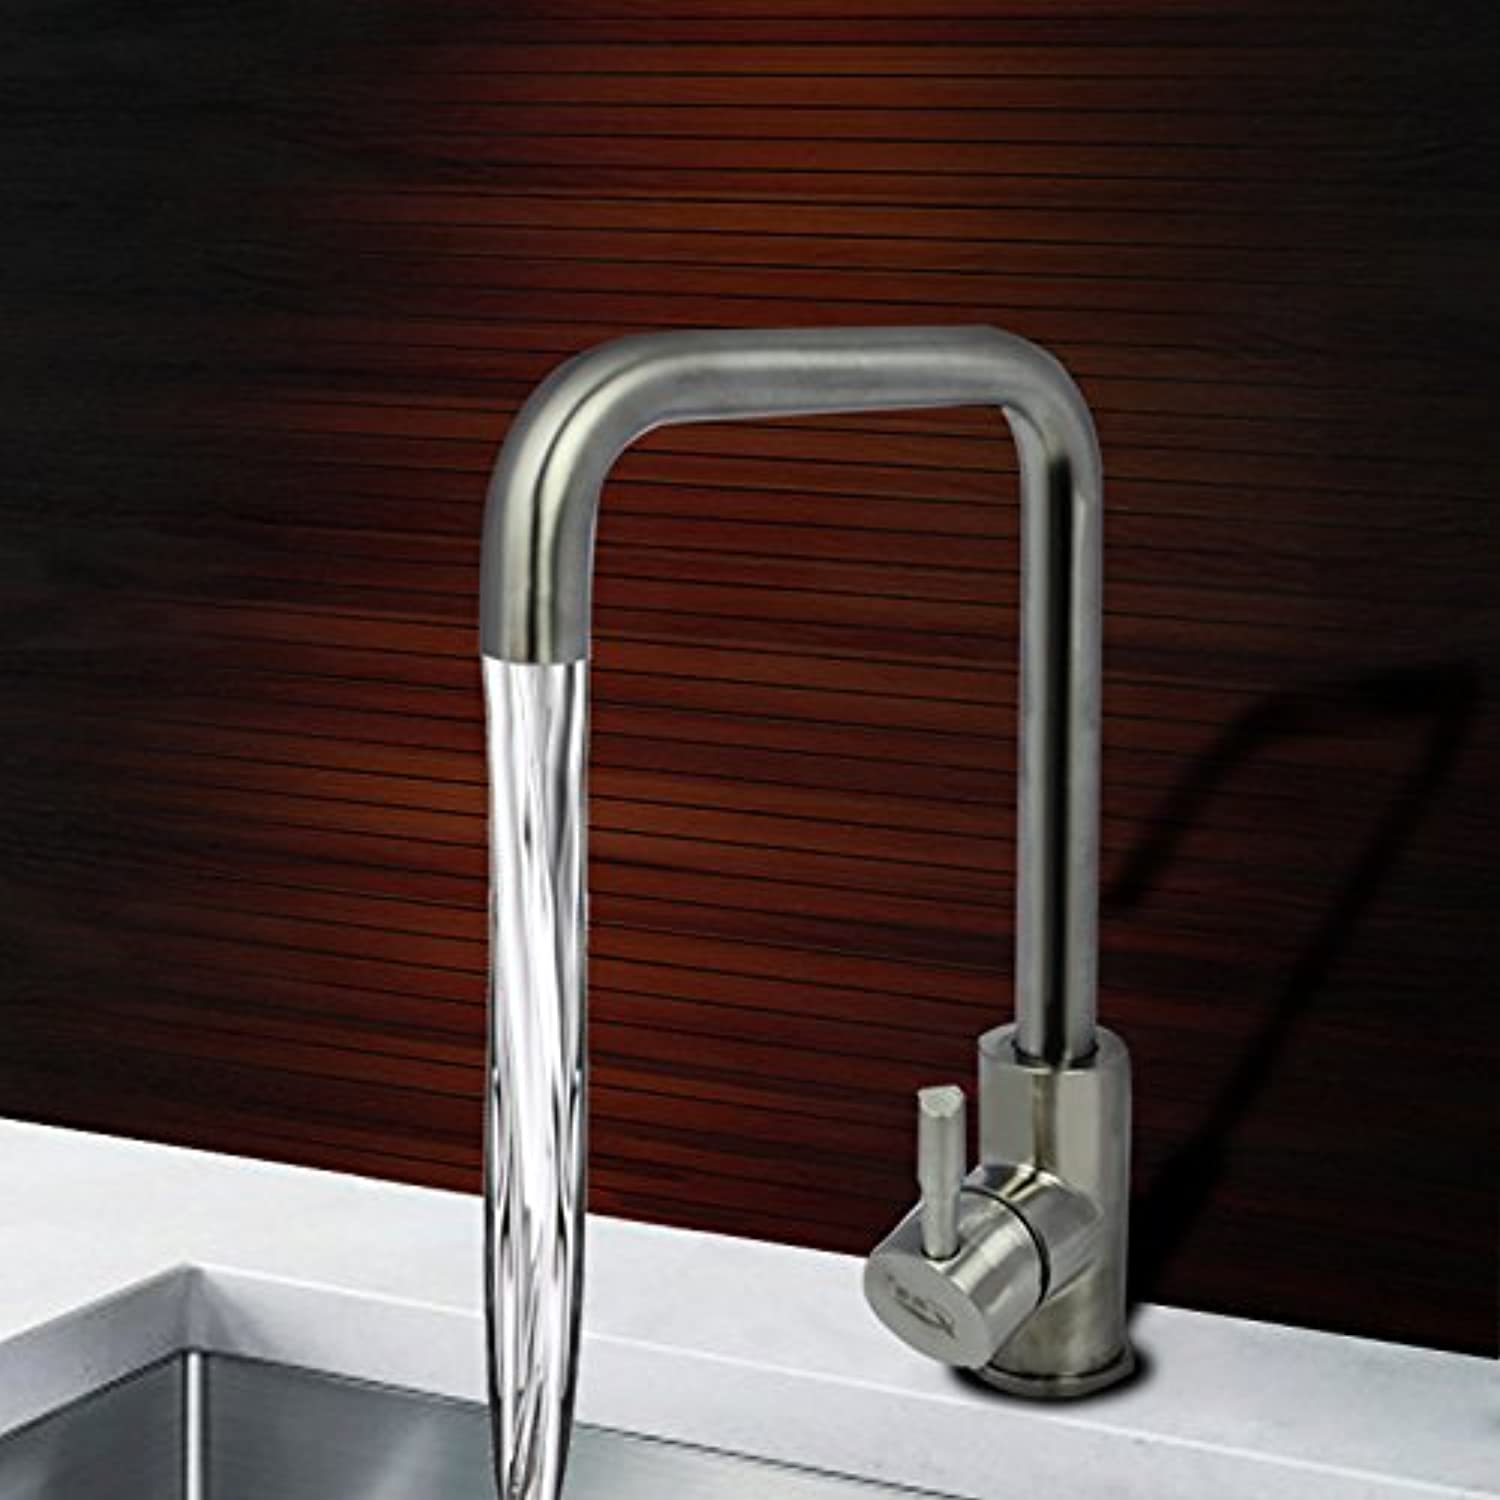 Hlluya Professional Sink Mixer Tap Kitchen Faucet Stainless Steel Kitchen Sinks Faucets, pedestal single-mixing of hot and cold water taps